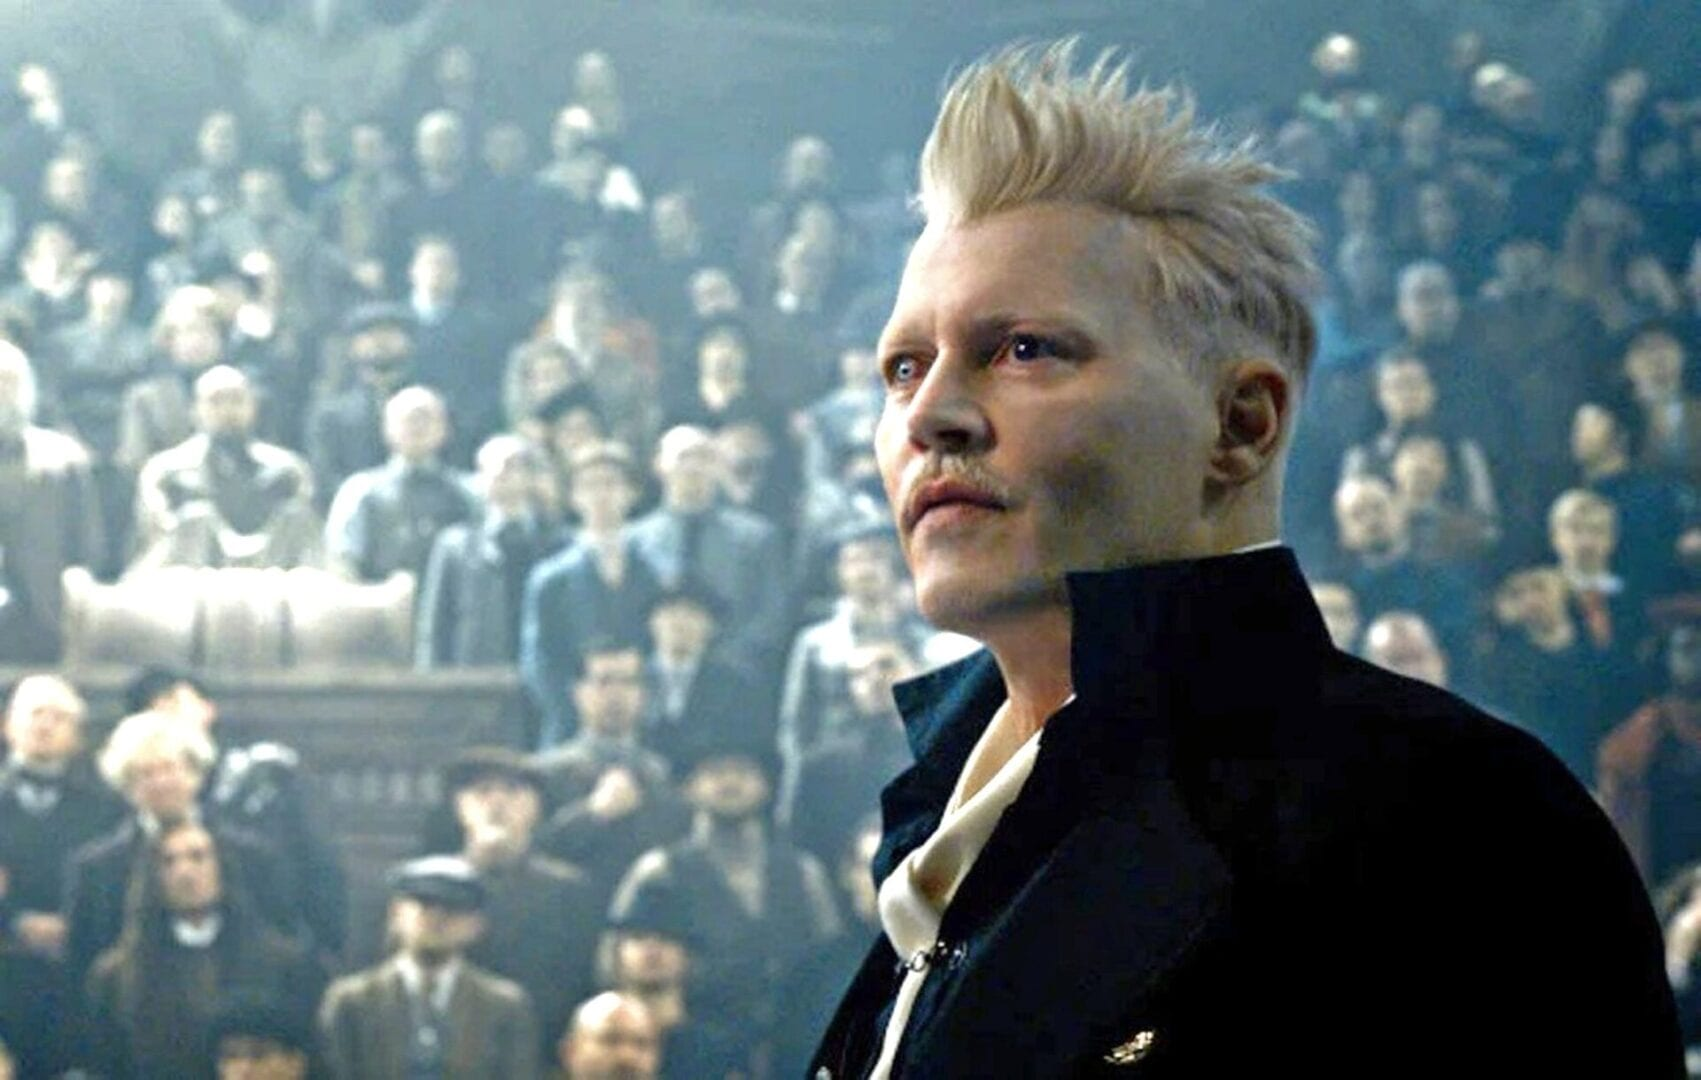 Johnny Depp resigns from role of Grindelwald in Fantastic Beasts